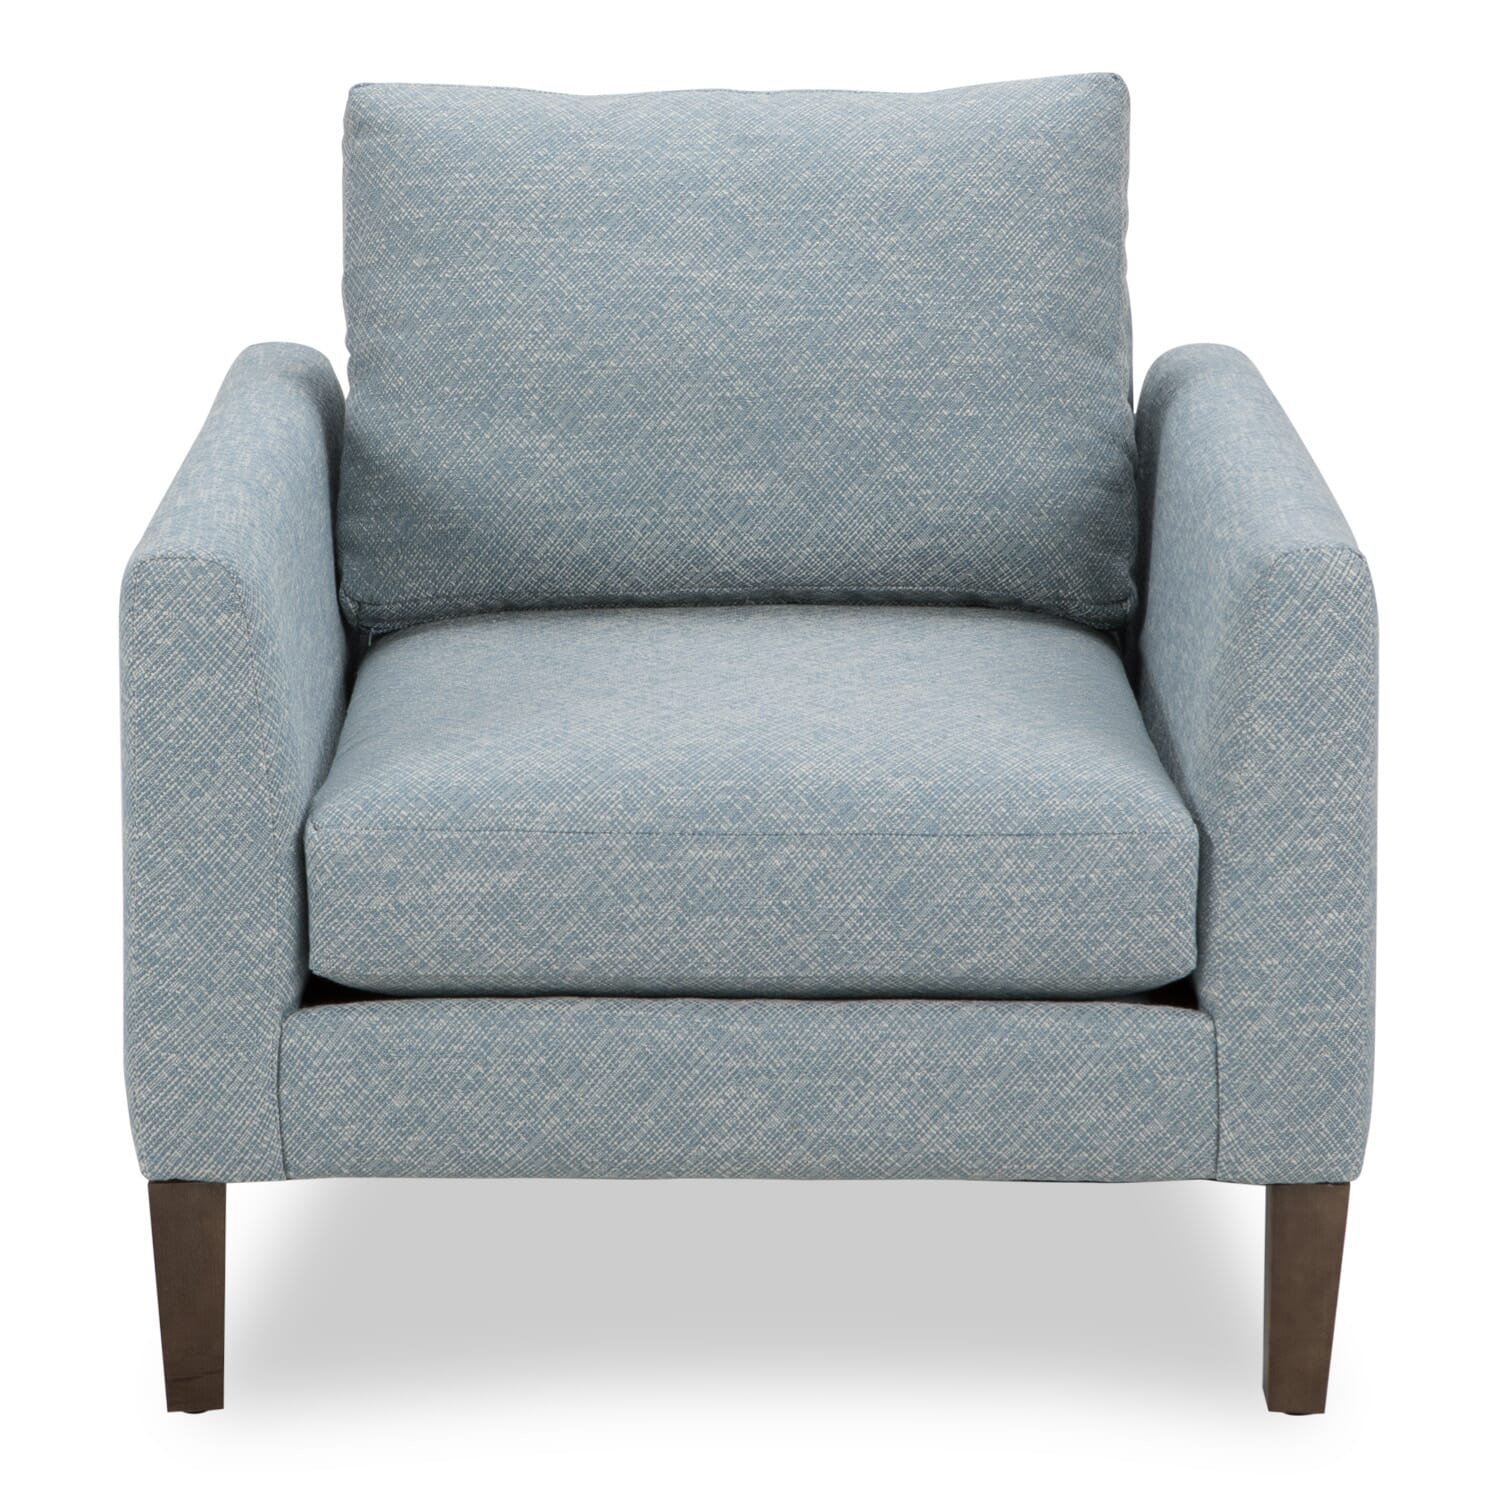 Thursday Accent Chair | Closeout, Chairs, Chairs ...